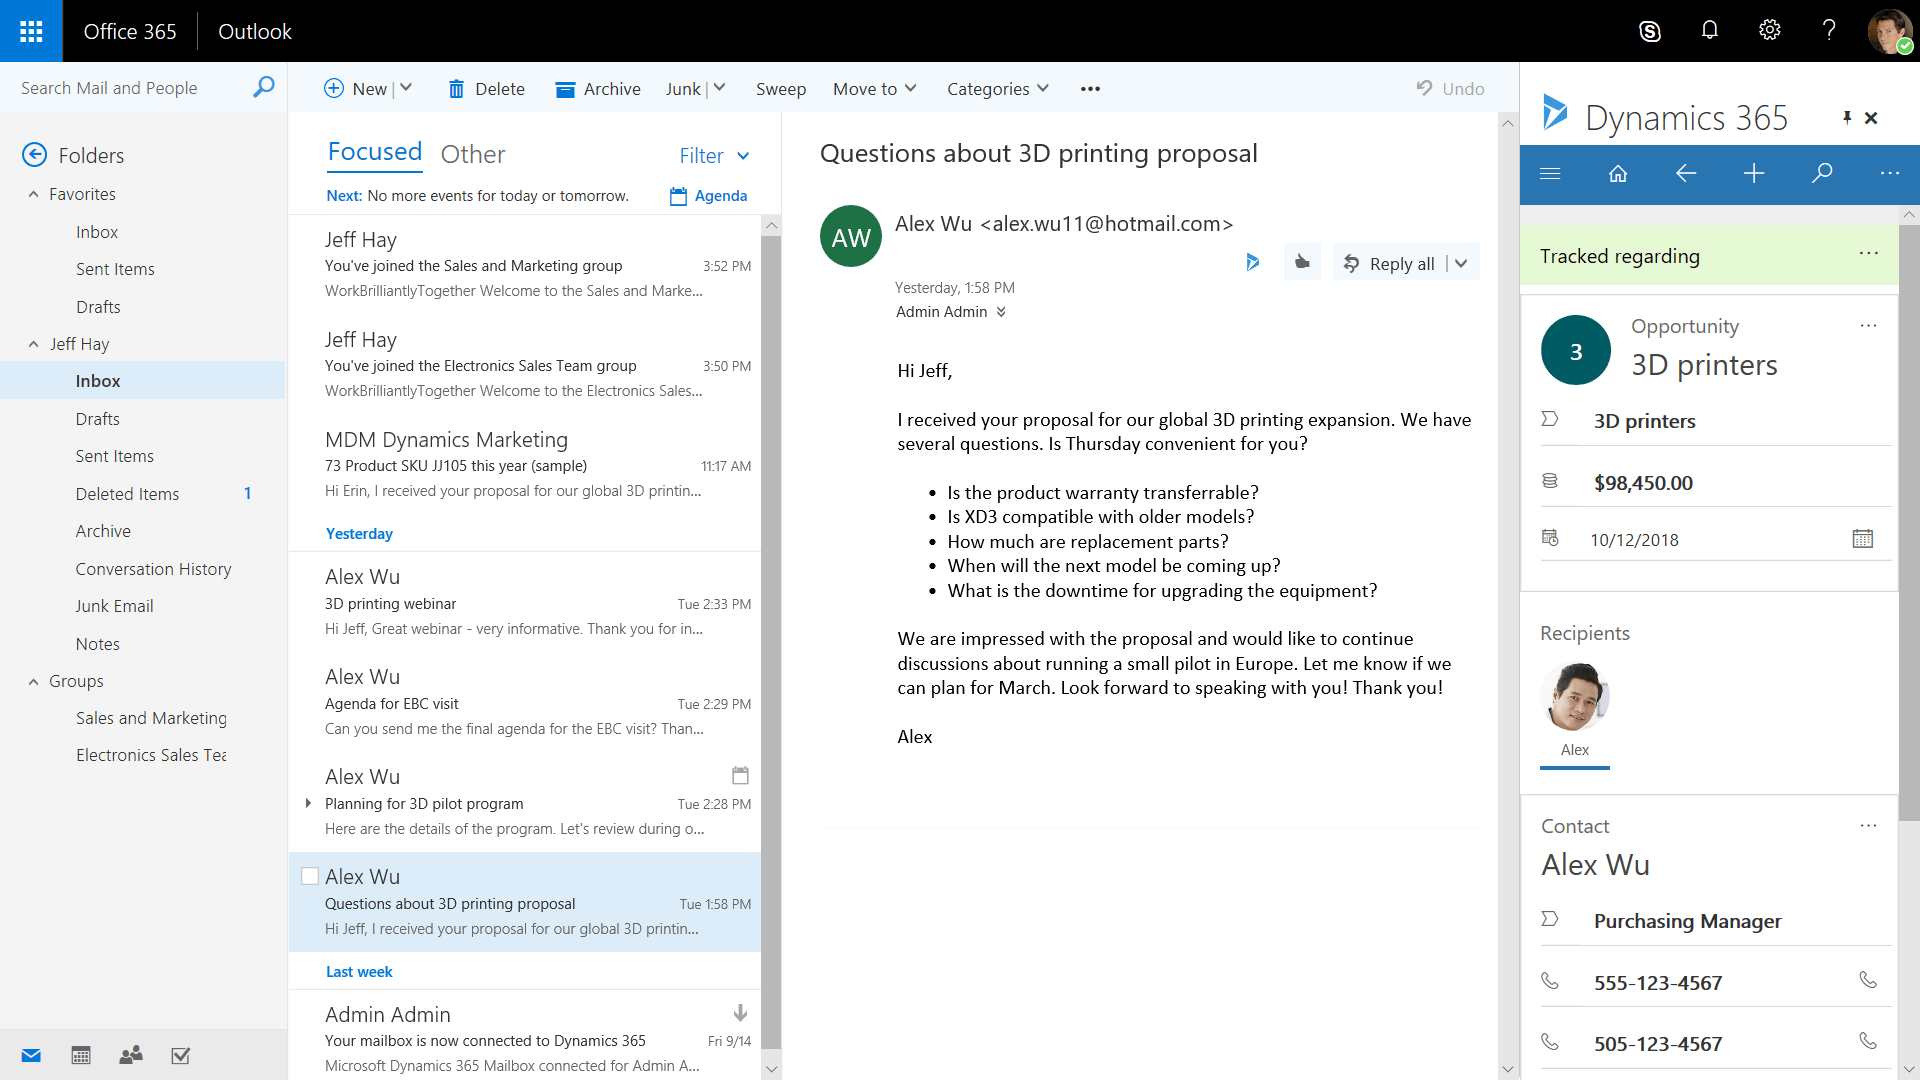 Dynamics 365 for Sales Professional - Outlook Web App